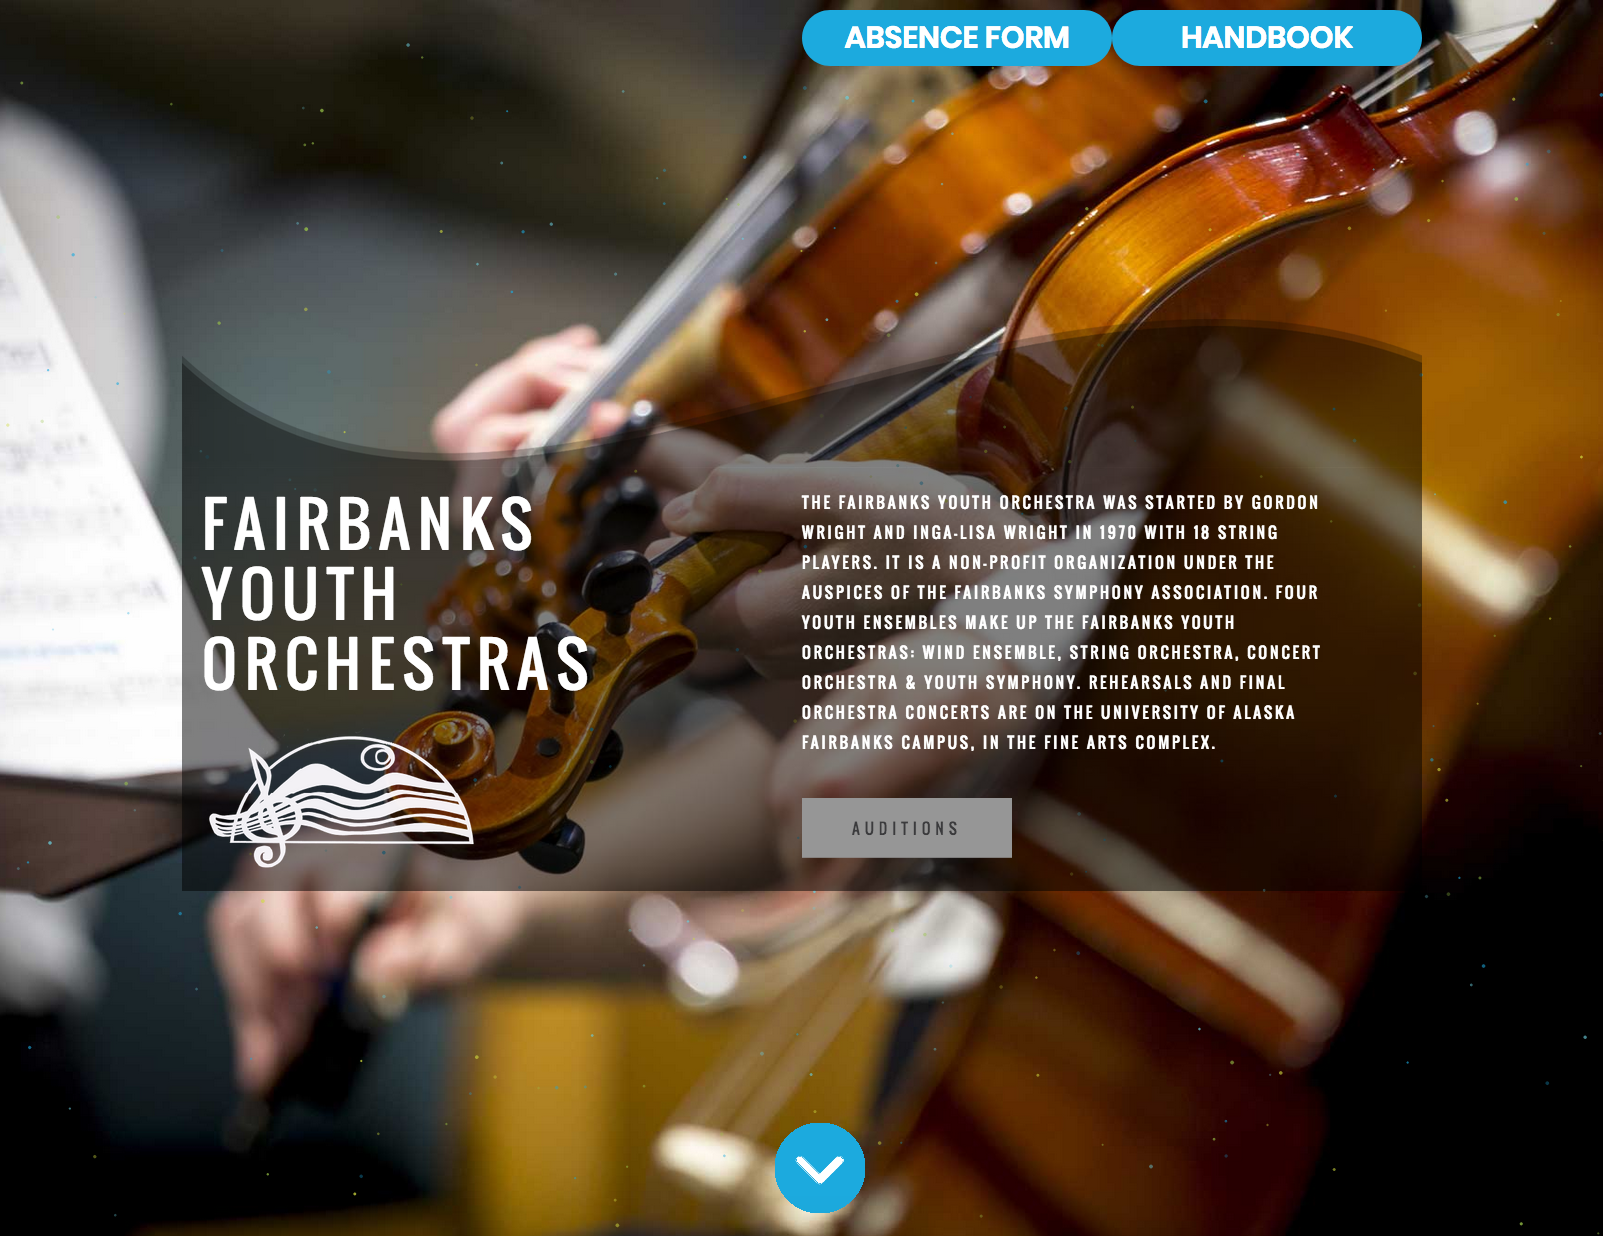 Fairbanks Youth Orchestras